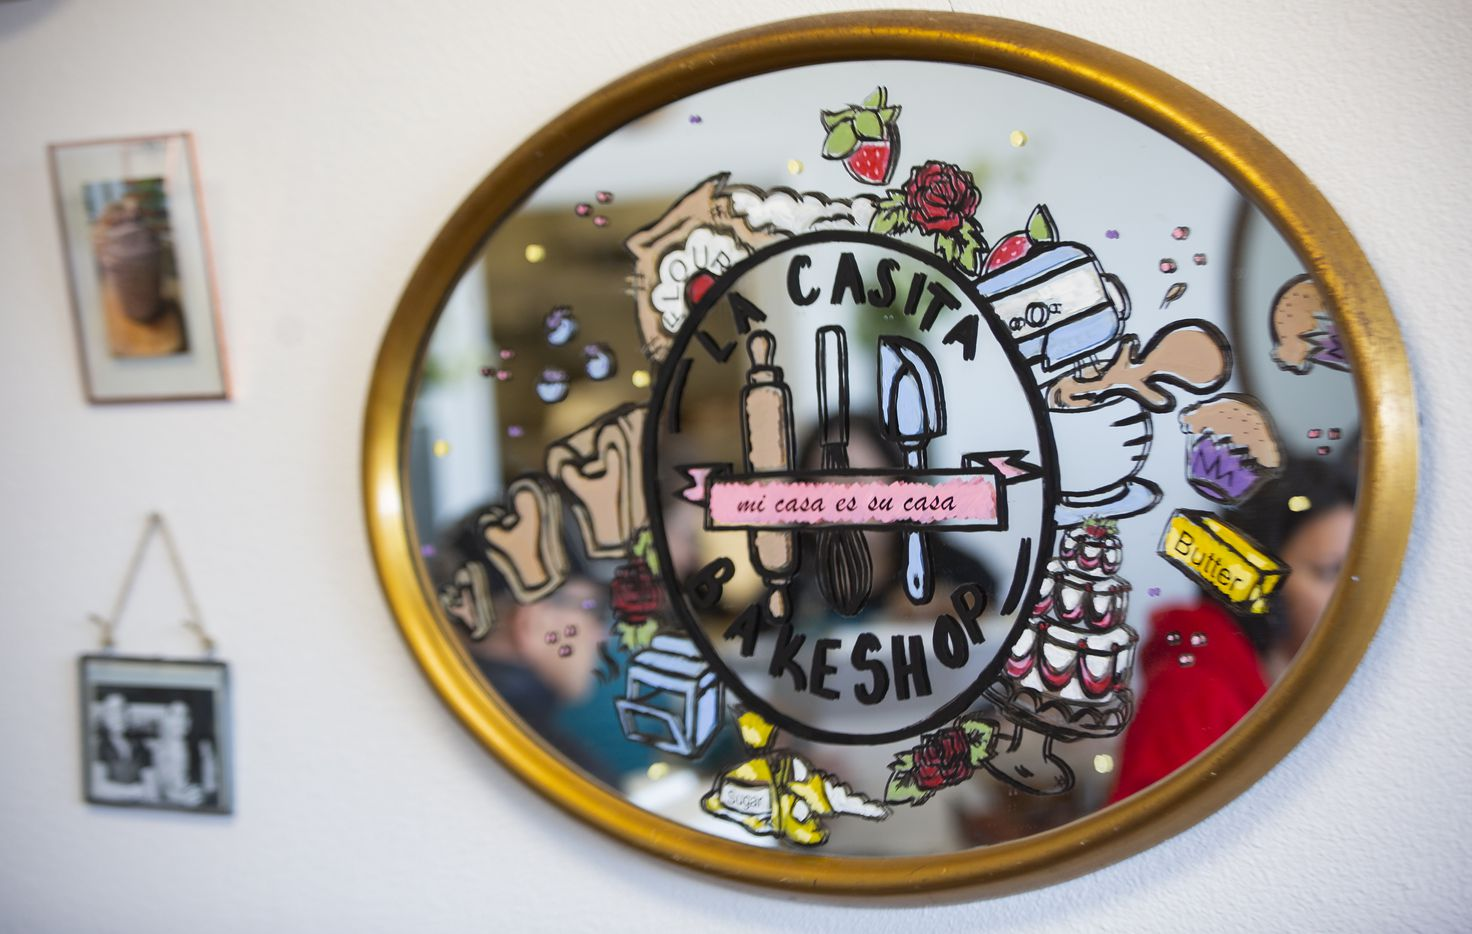 A mirror in La Casita Bakeshop during the shops opening day on Feb. 8, 2020 in Richardson.